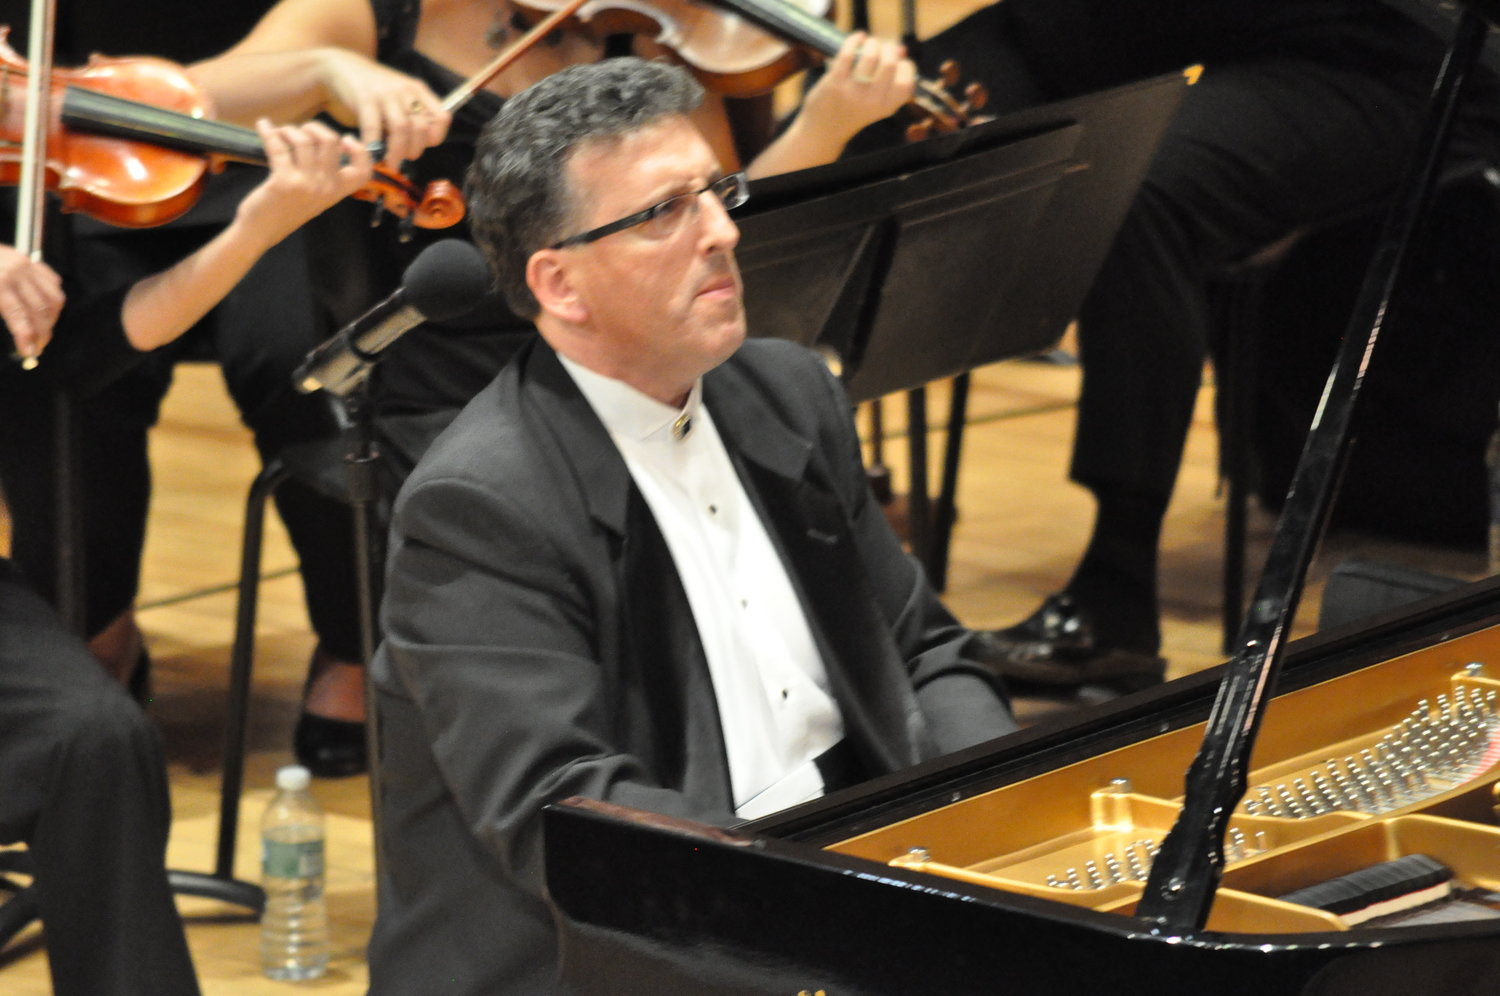 Jeffrey Biegel joins the South Shore Symphony Orchestra for their performance at the Madison Theatre on Feb. 9.